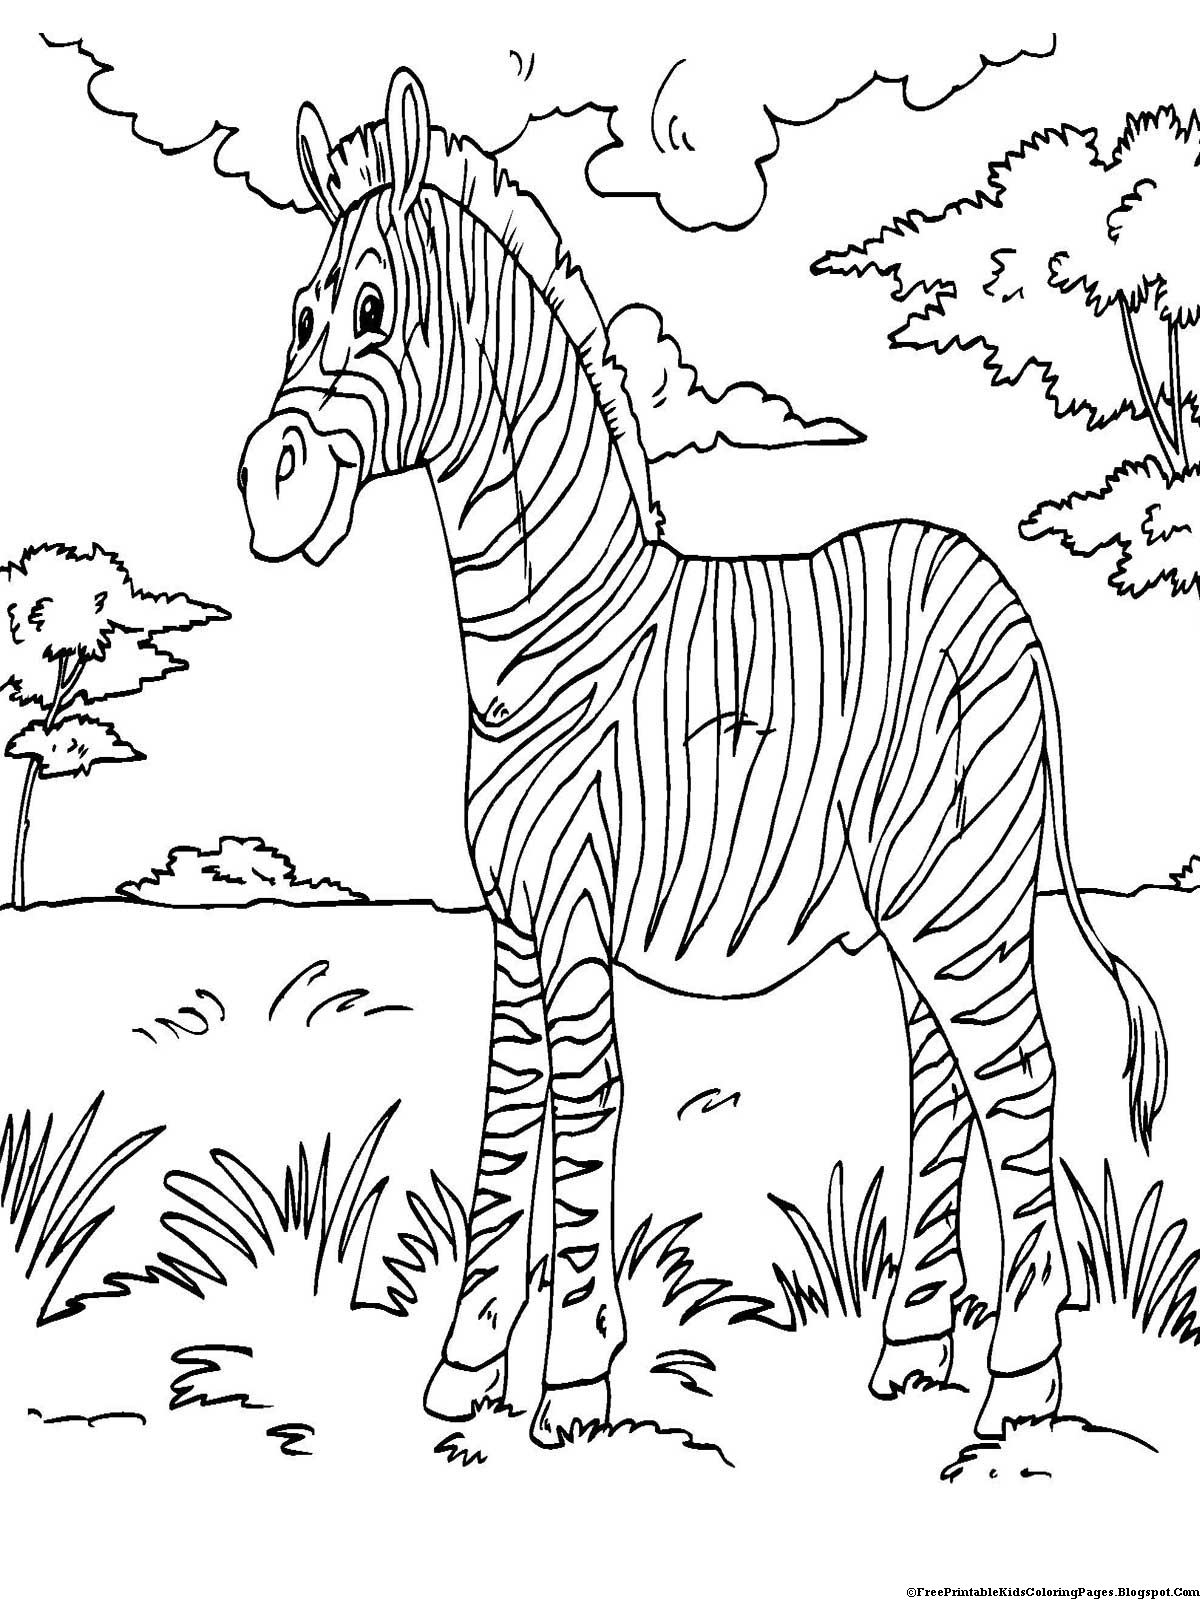 coloring worksheets animals incredible turtle animals coloring pages for adults worksheets animals coloring